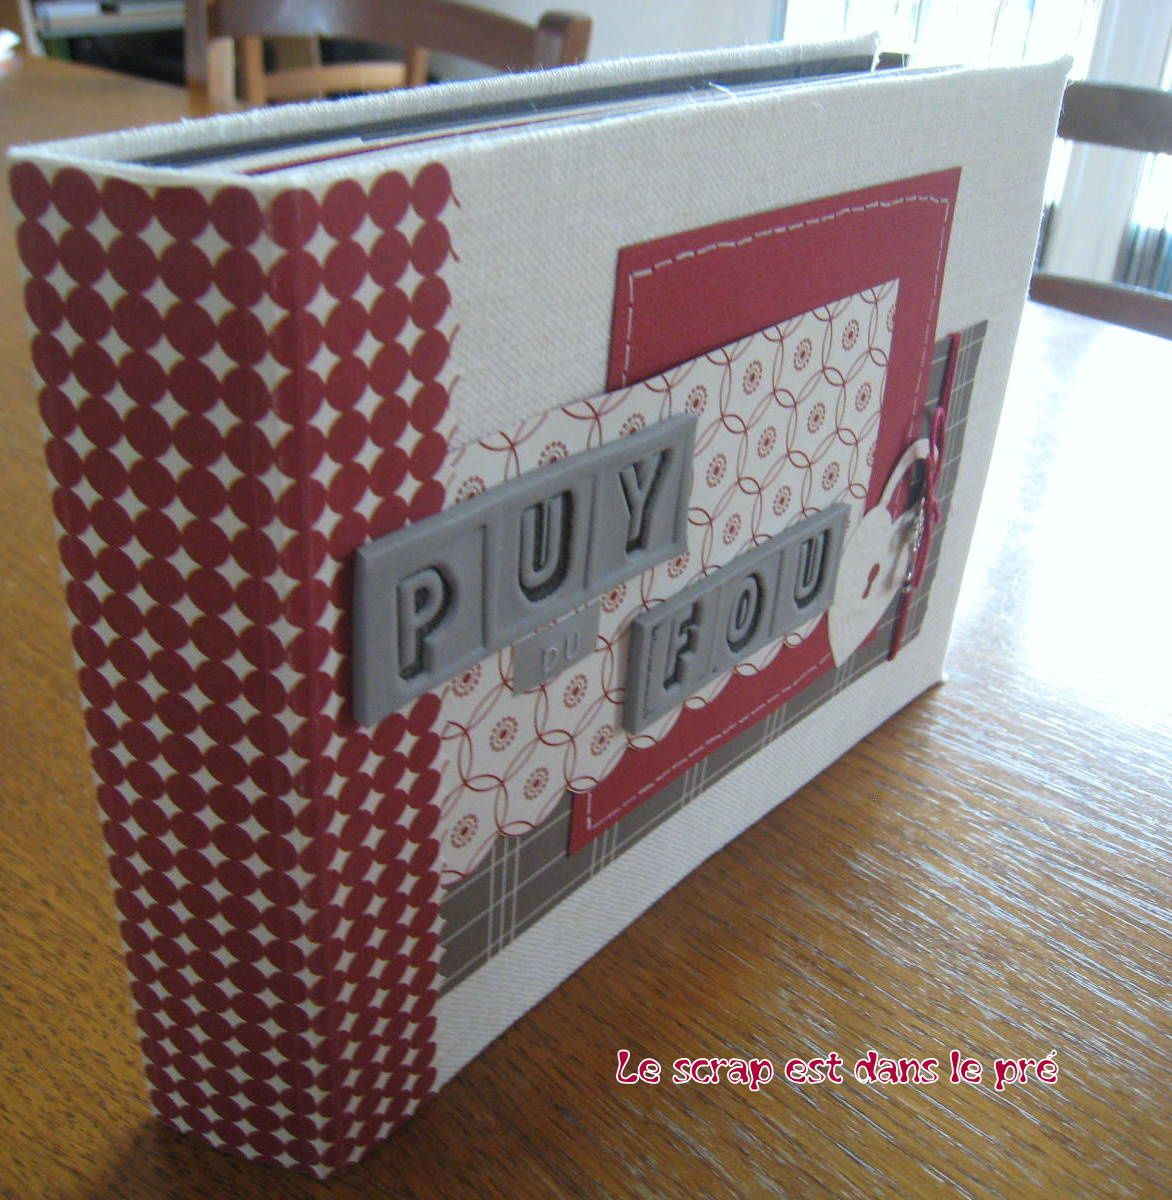 Mini Album Puy du fou